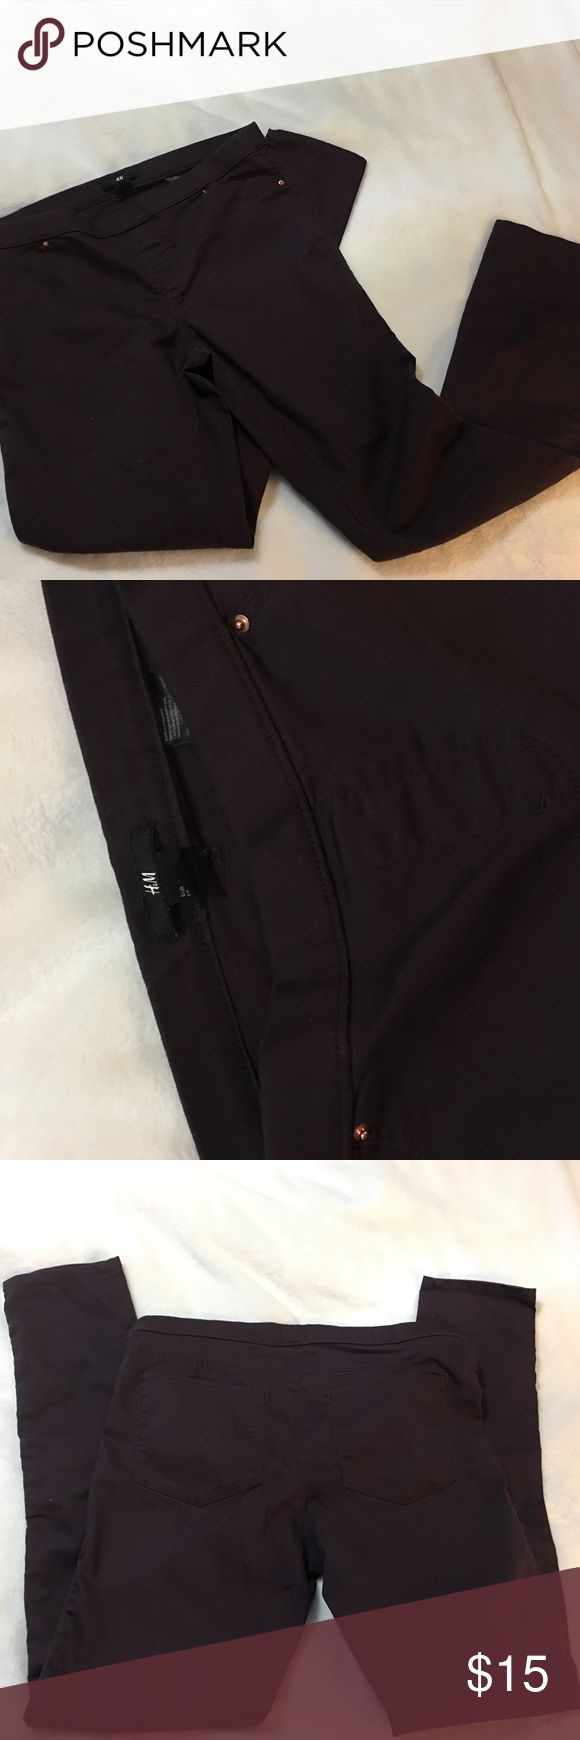 """H&M Stretch Pull On Skinny Pants H&M purple skinny stretch pants size 12 in excellent used condition.  No stains, tears or rips.  Please see pictures and ask any questions before purchasing.  Measurements: Waist: 16"""" Inseam: 30"""" H&M Pants Skinny"""